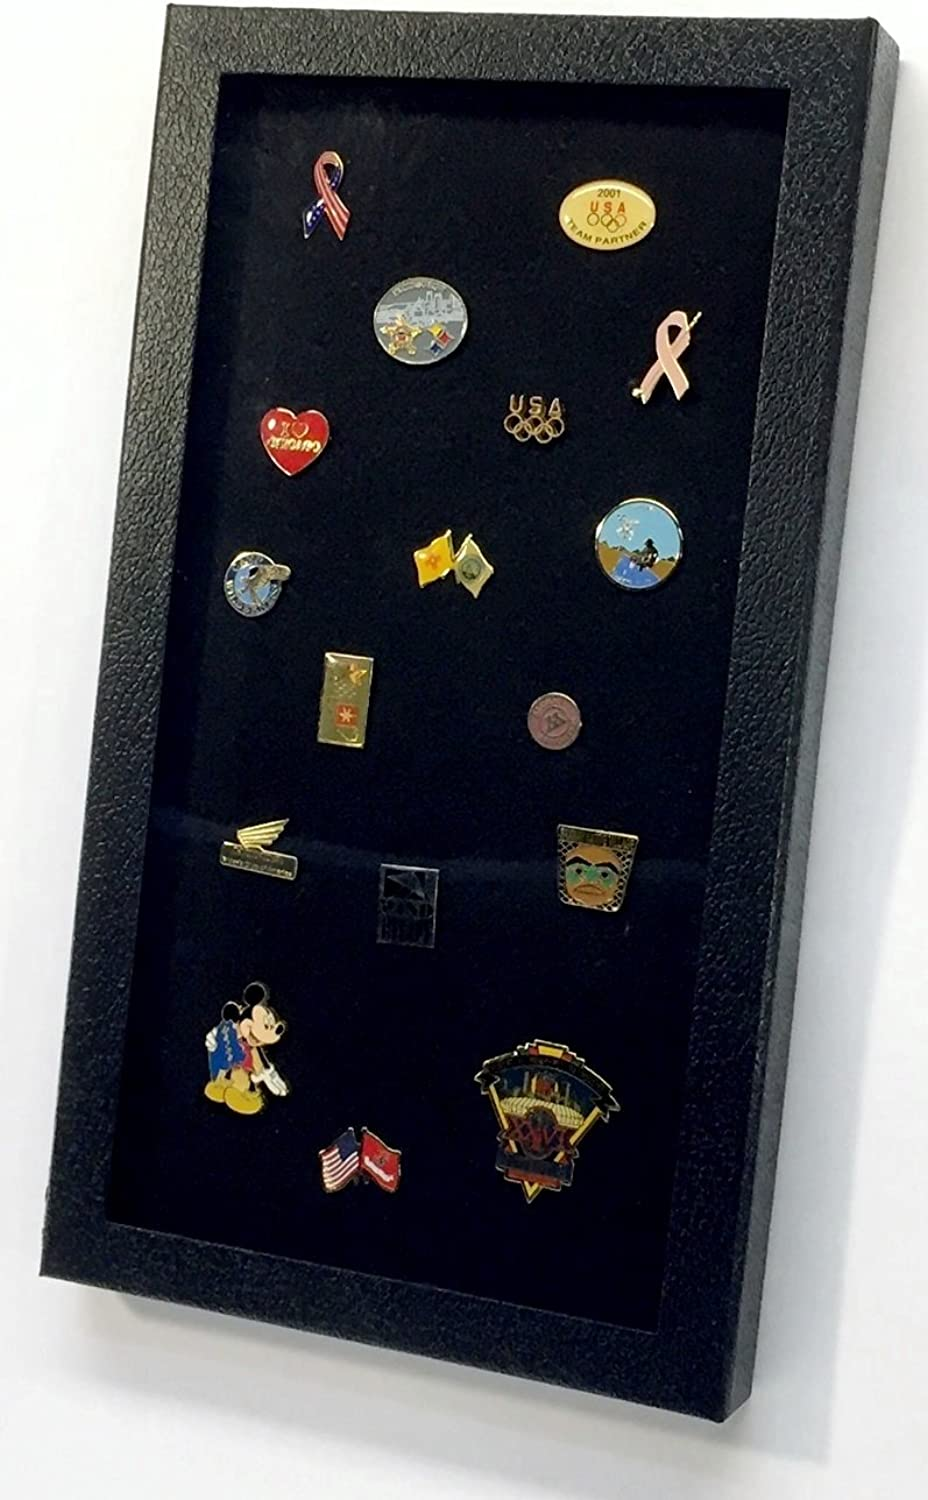 Pin Collector's Display Case by Hobbymaster  for Disney, Hard Rock, Olympic & other collectible pins, holds up to 100 pins